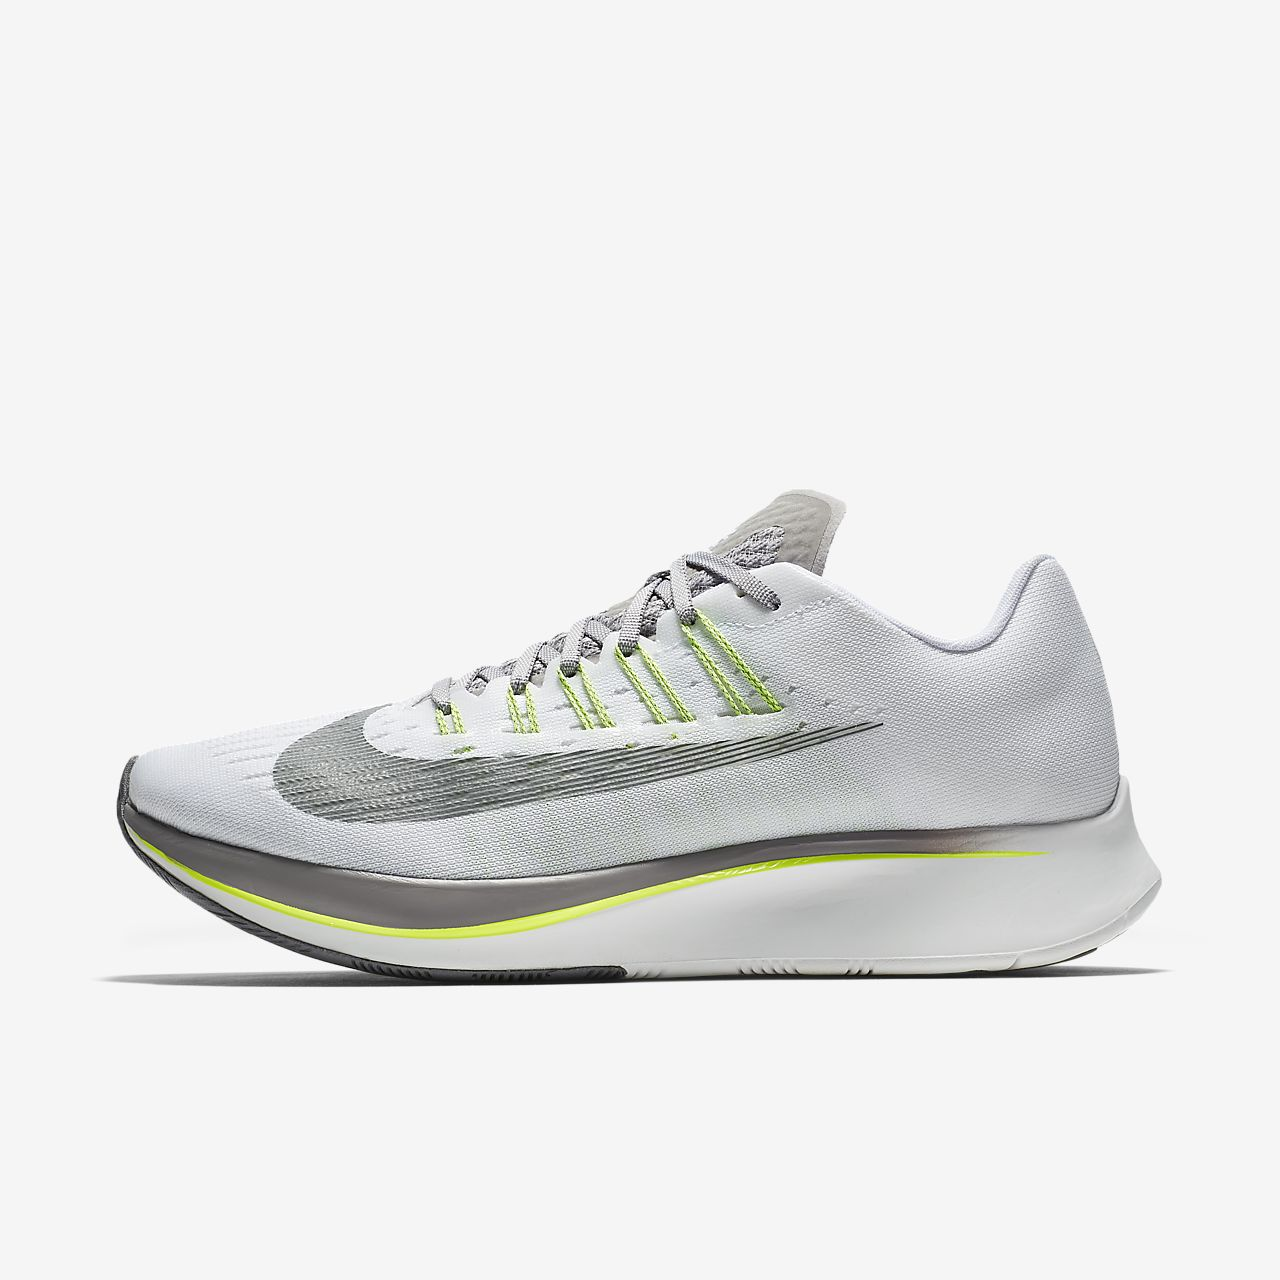 7087269d743 Nike Zoom Fly Men s Running Shoe. Nike.com